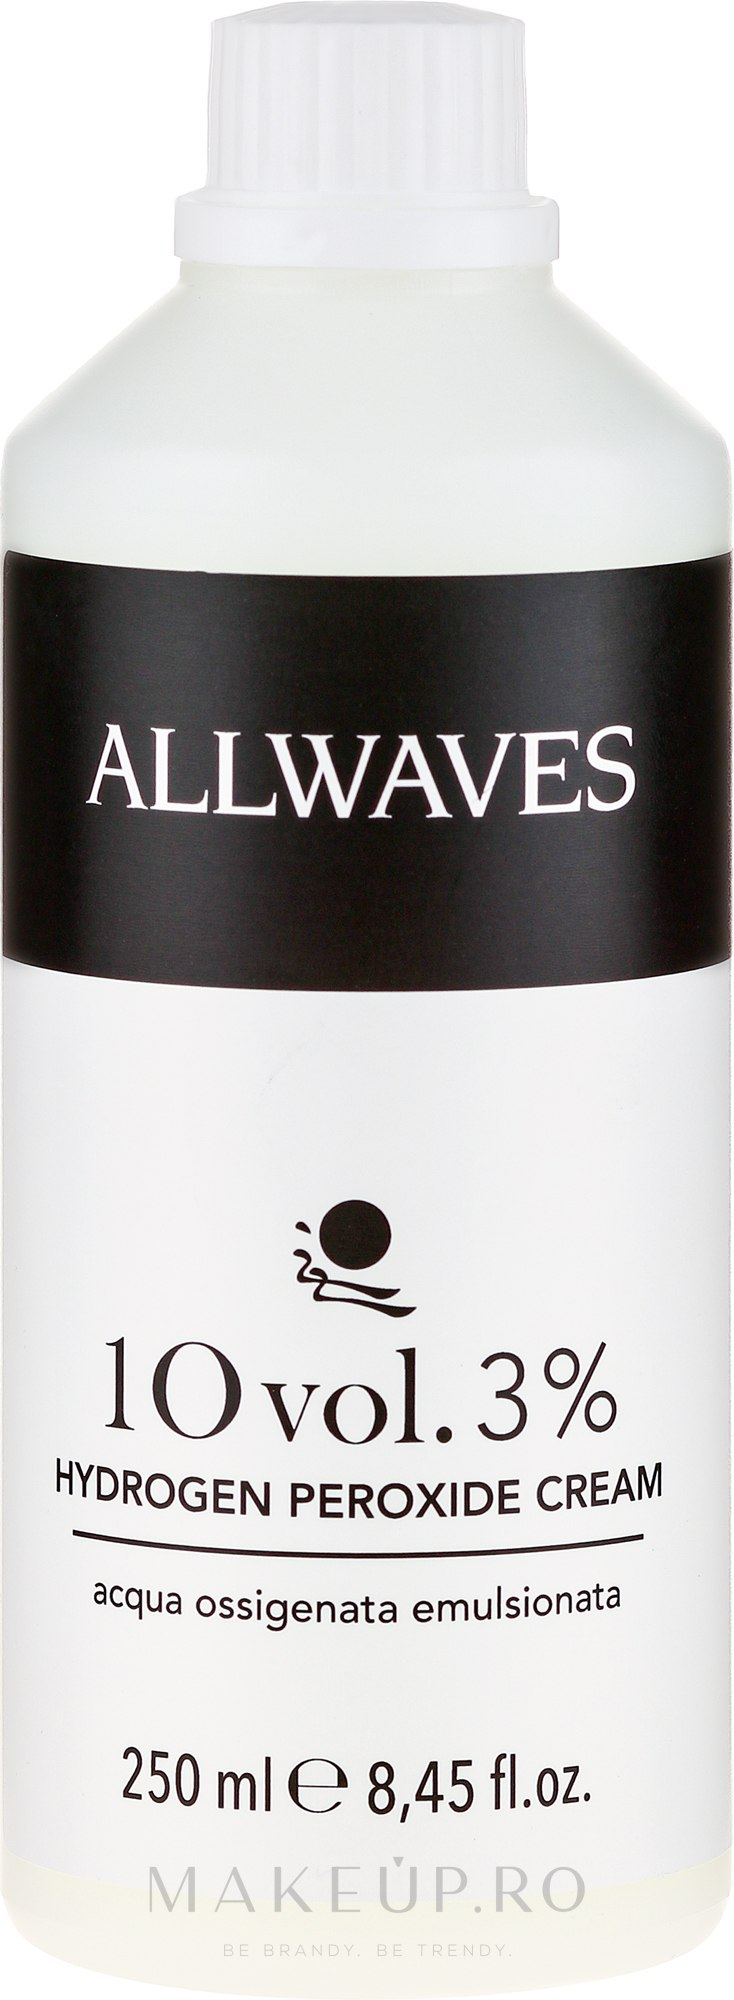 Cremă oxidantă - Allwaves Cream Hydrogen Peroxide 3% — Imagine 250 ml